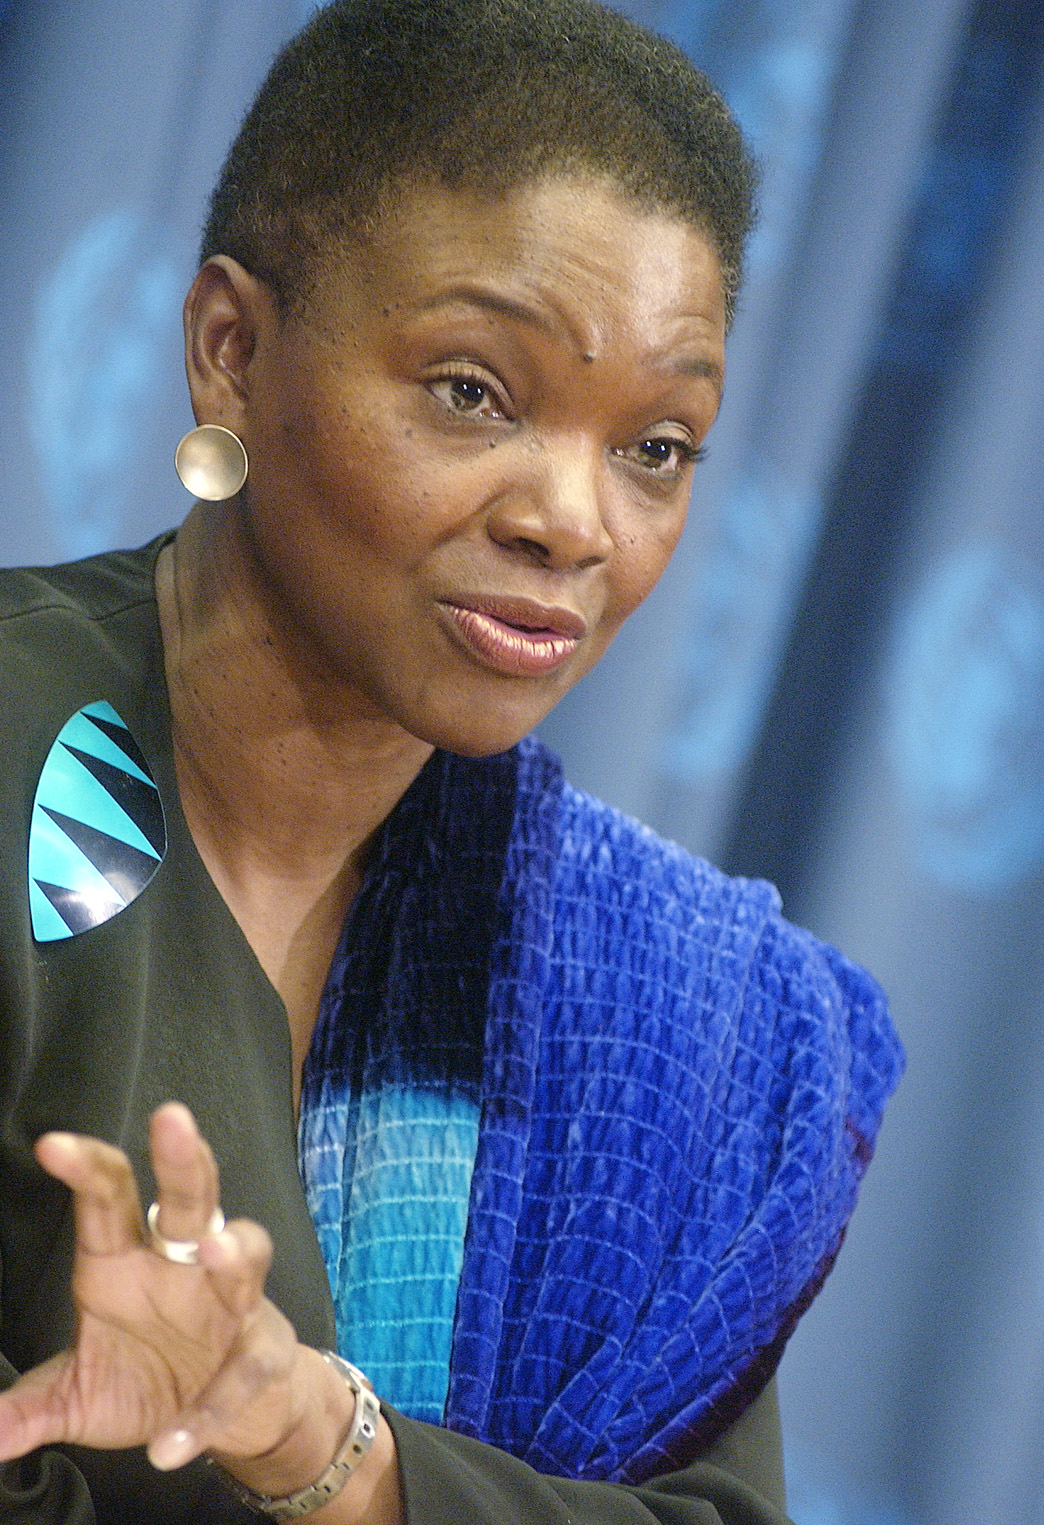 Valerie Amos, Under-Secretary-General for Humanitarian Affairs and Emergency Relief Coordinator